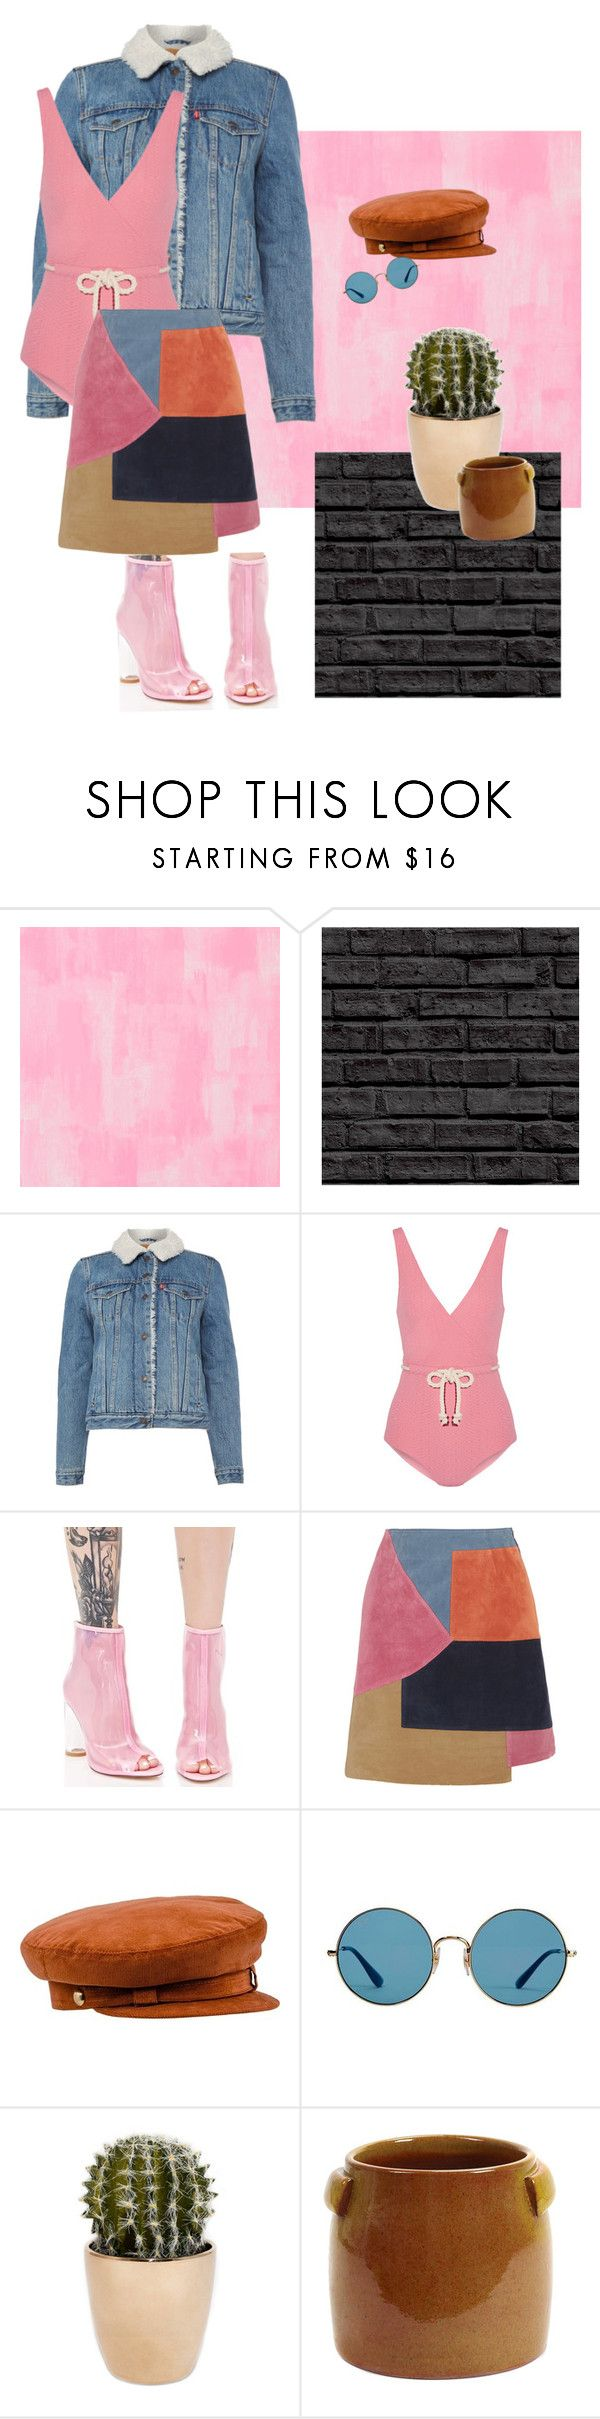 """""""Strawberries & cream"""" by lunar-delli ❤ liked on Polyvore featuring Designers Guild, Levi's, Lisa Marie Fernandez, Cape Robbin, M.i.h Jeans, Ray-Ban and Serax"""